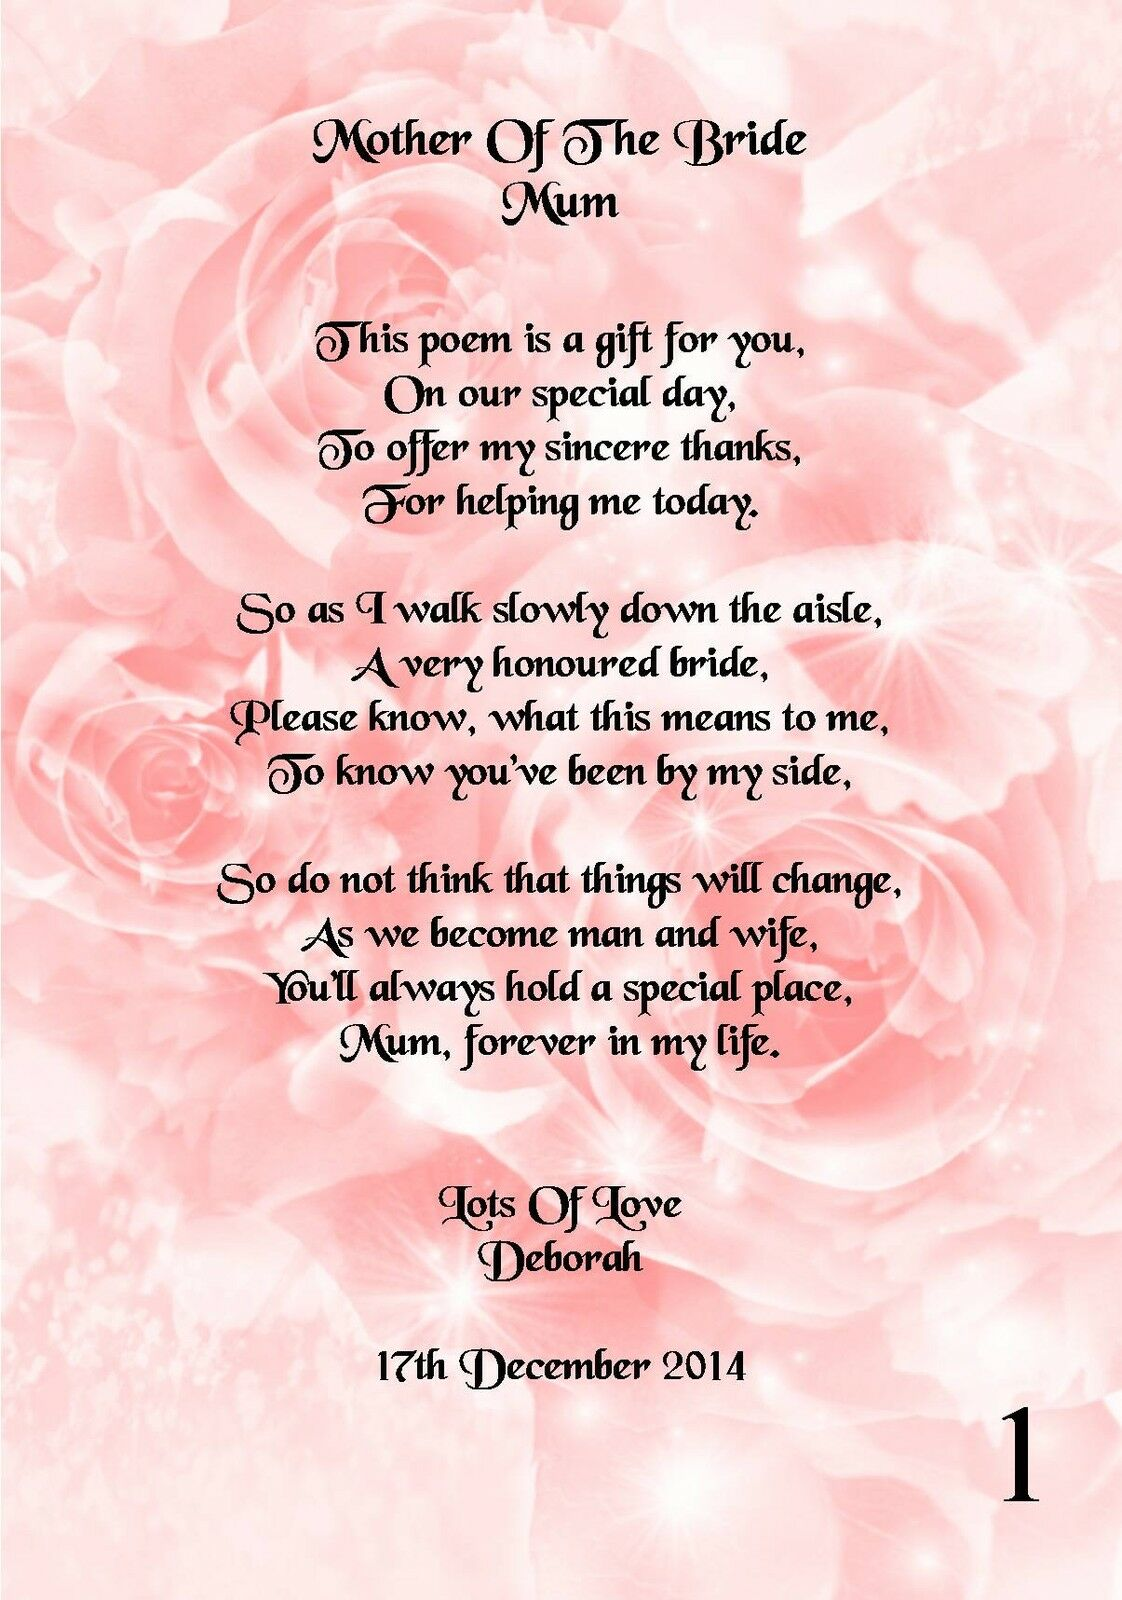 Wedding Day Thank You Gift Mother of The Bride Poem A5 Photo | eBay